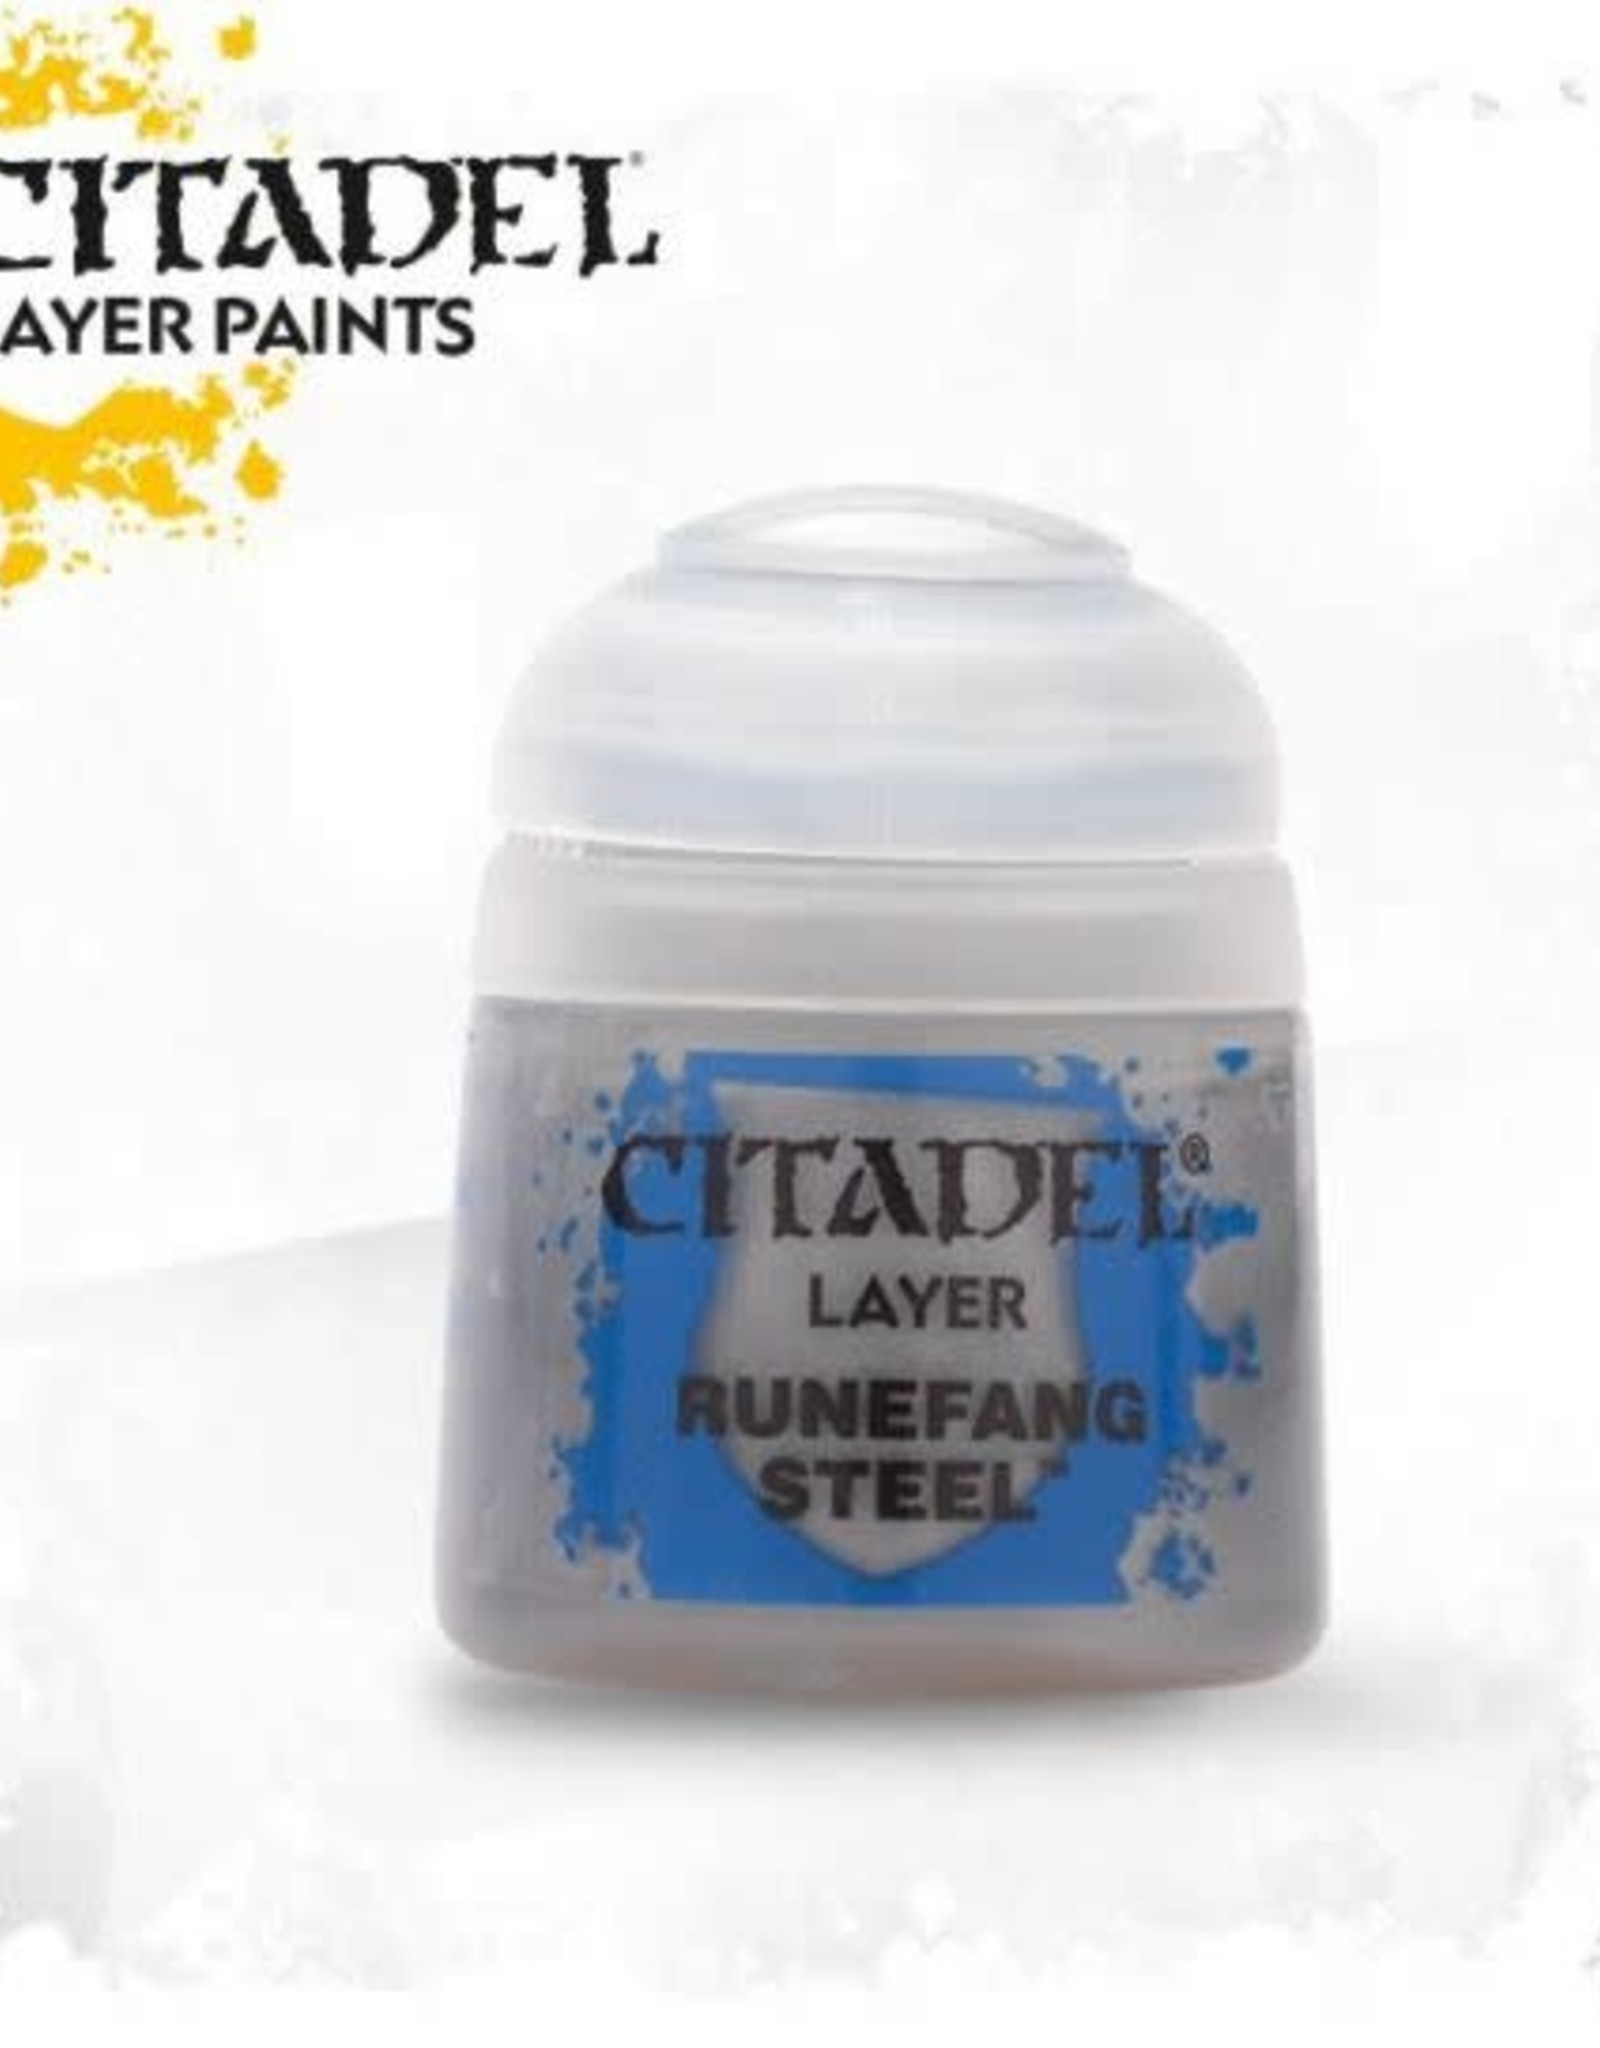 Games Workshop Citadel Paint: Layer - Runefang Steel